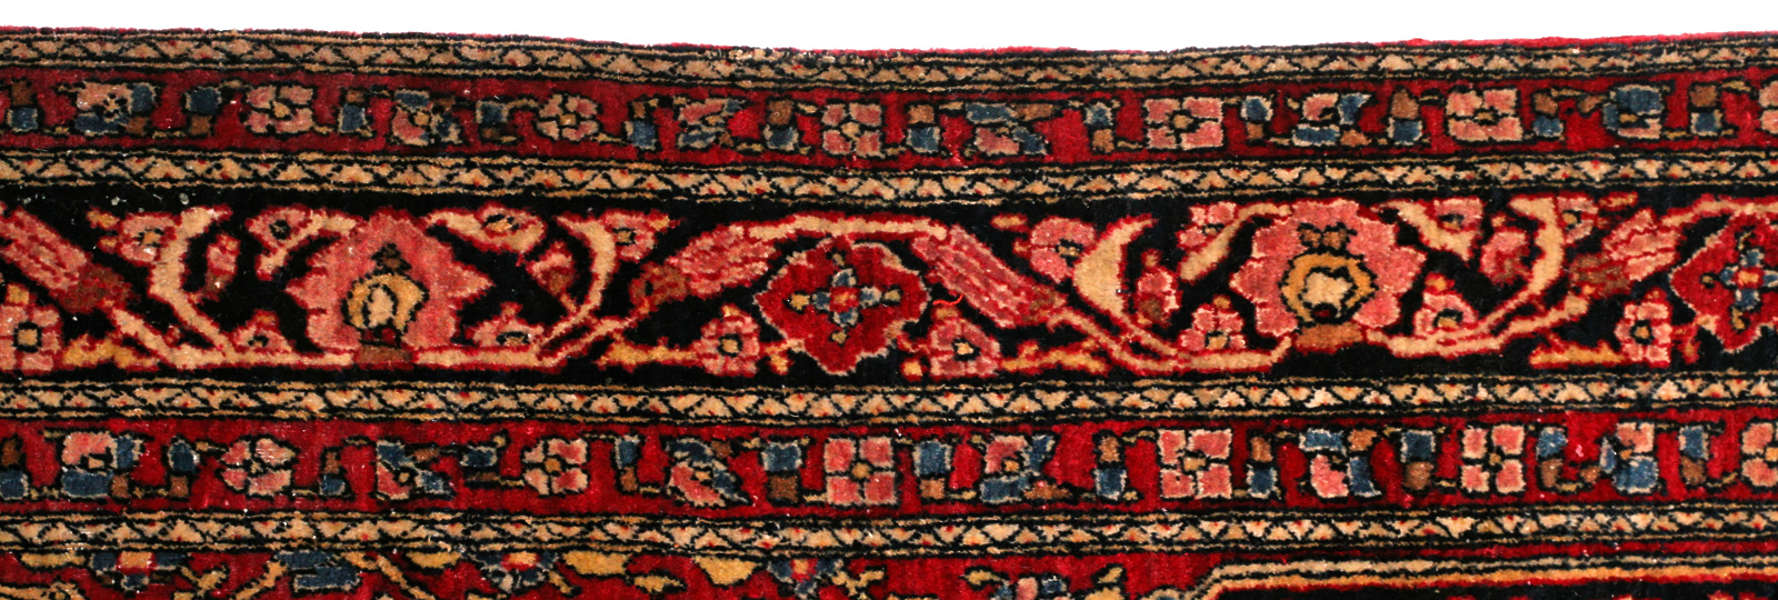 Persiancarpets0020 Free Background Texture Fabric